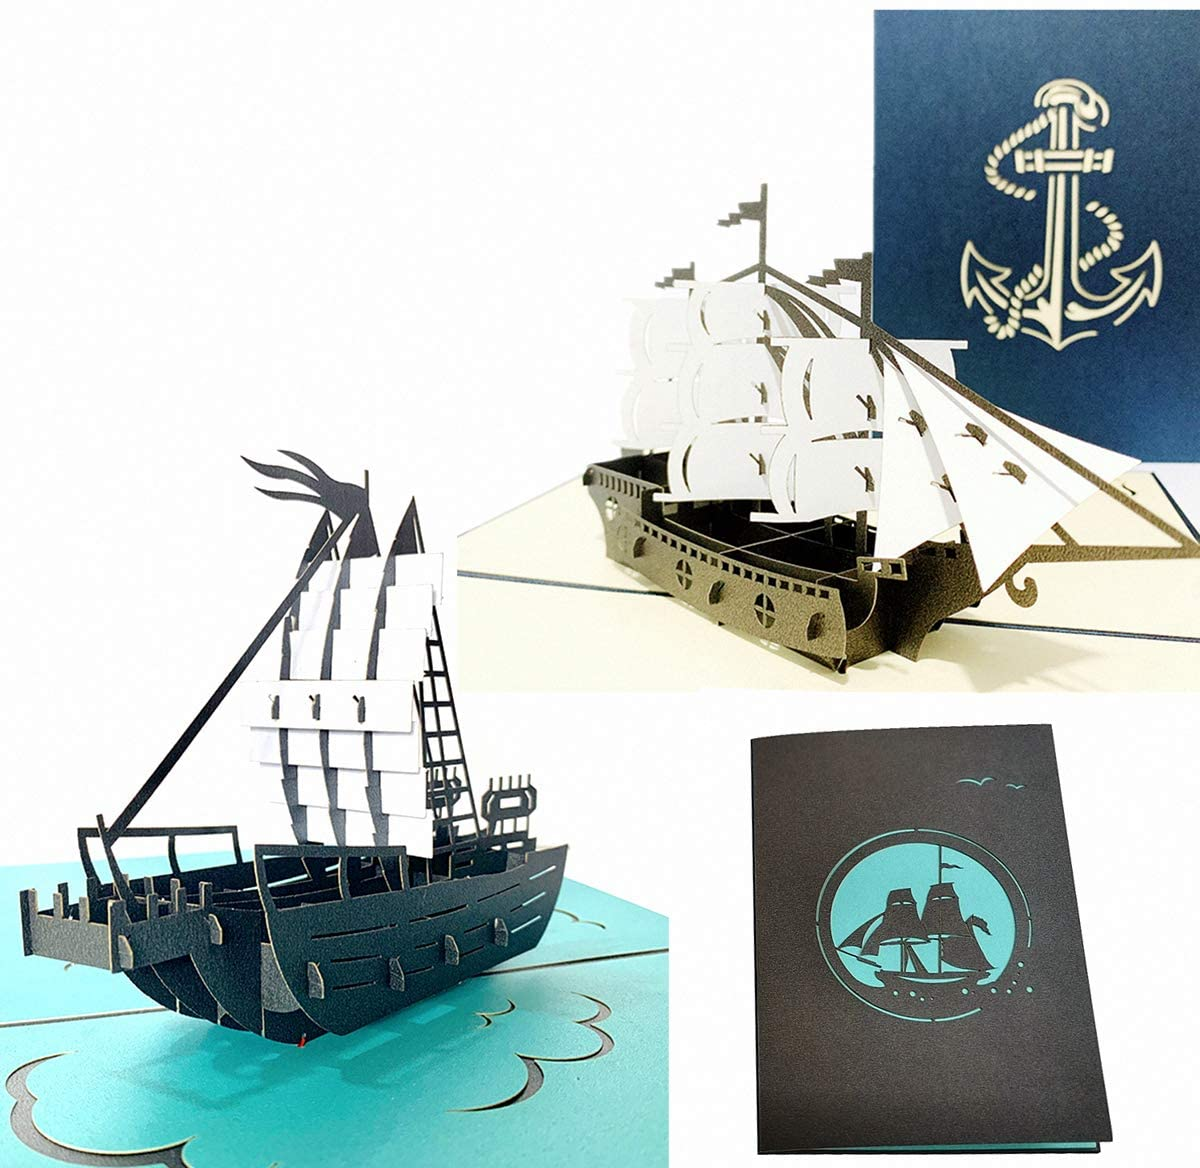 Set of 2 Sailing Boat Pop Up Cards Greeting Cards for Congratulation, for Special Day,Valentine's Day, Birthday or Wedding Congratulation, with Envelope (Mixing 2 styles)